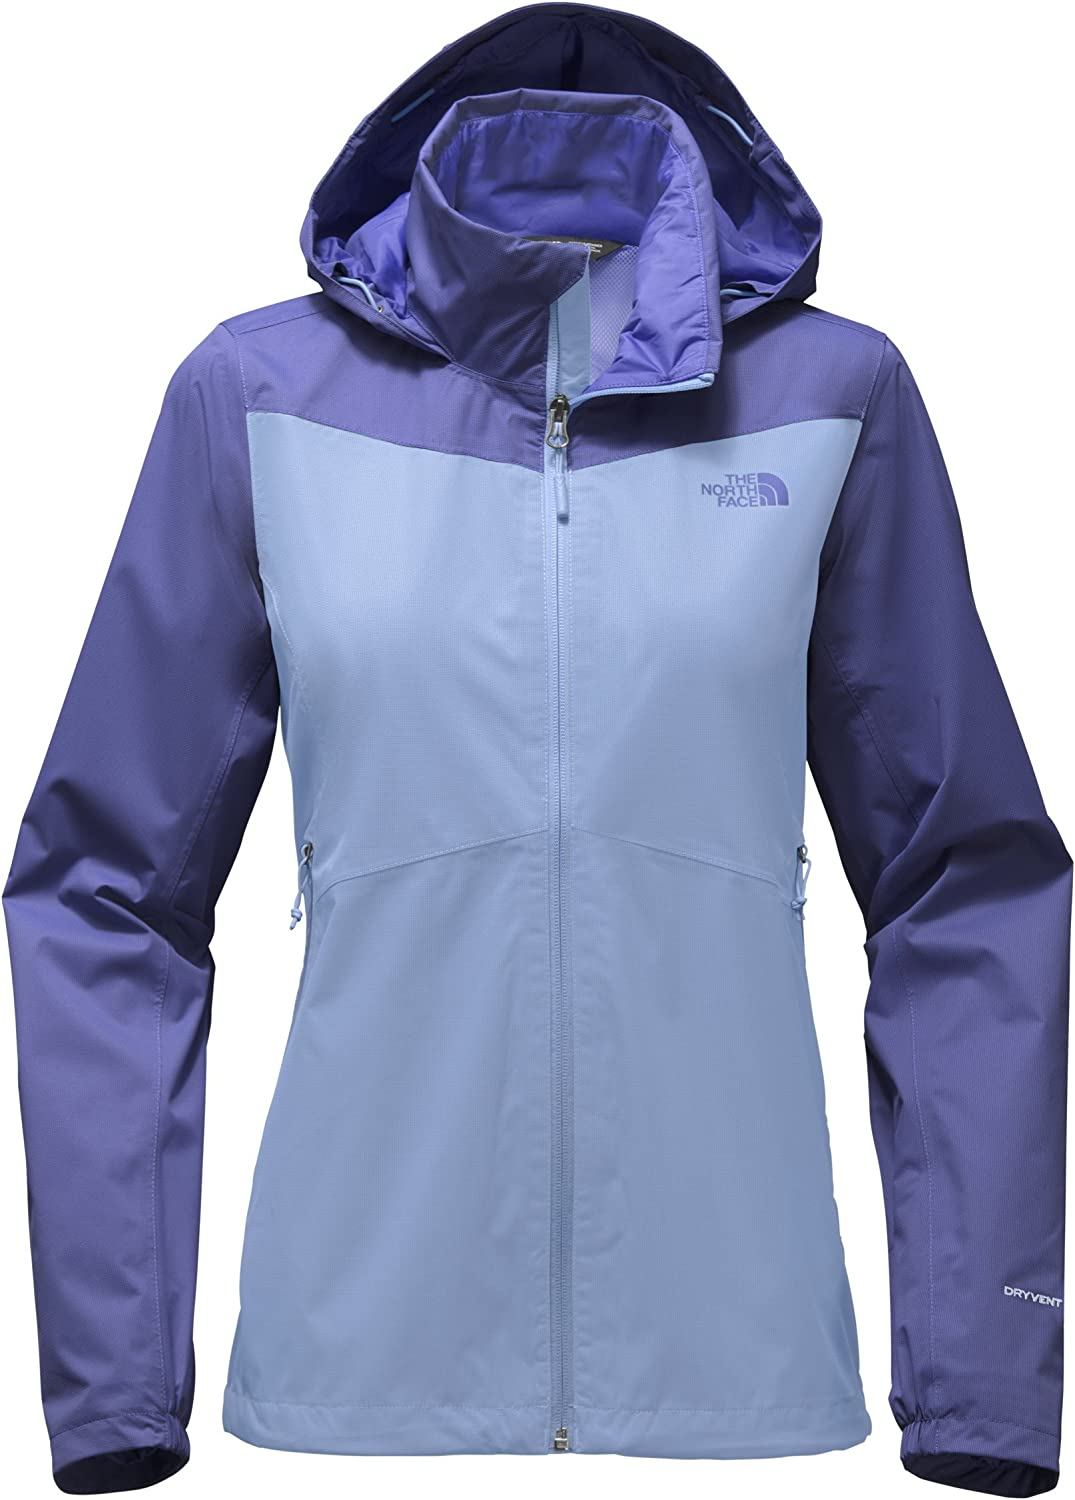 The North Face Women's Resolve Plus Jacket  Collar bluee and Stellar bluee  S